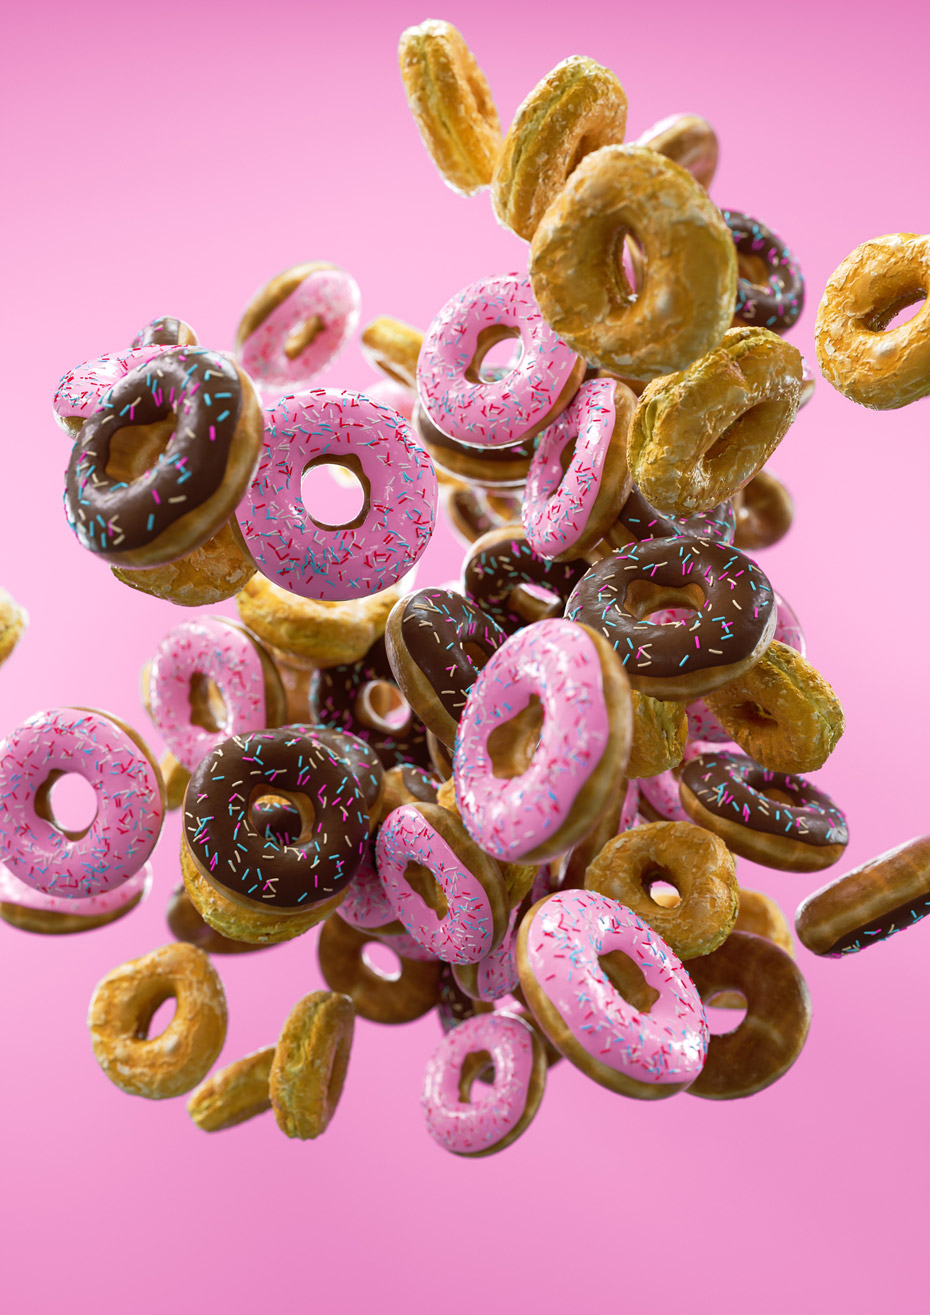 Hungry_Donuts_Ben-Fearnley_WebRes.jpg